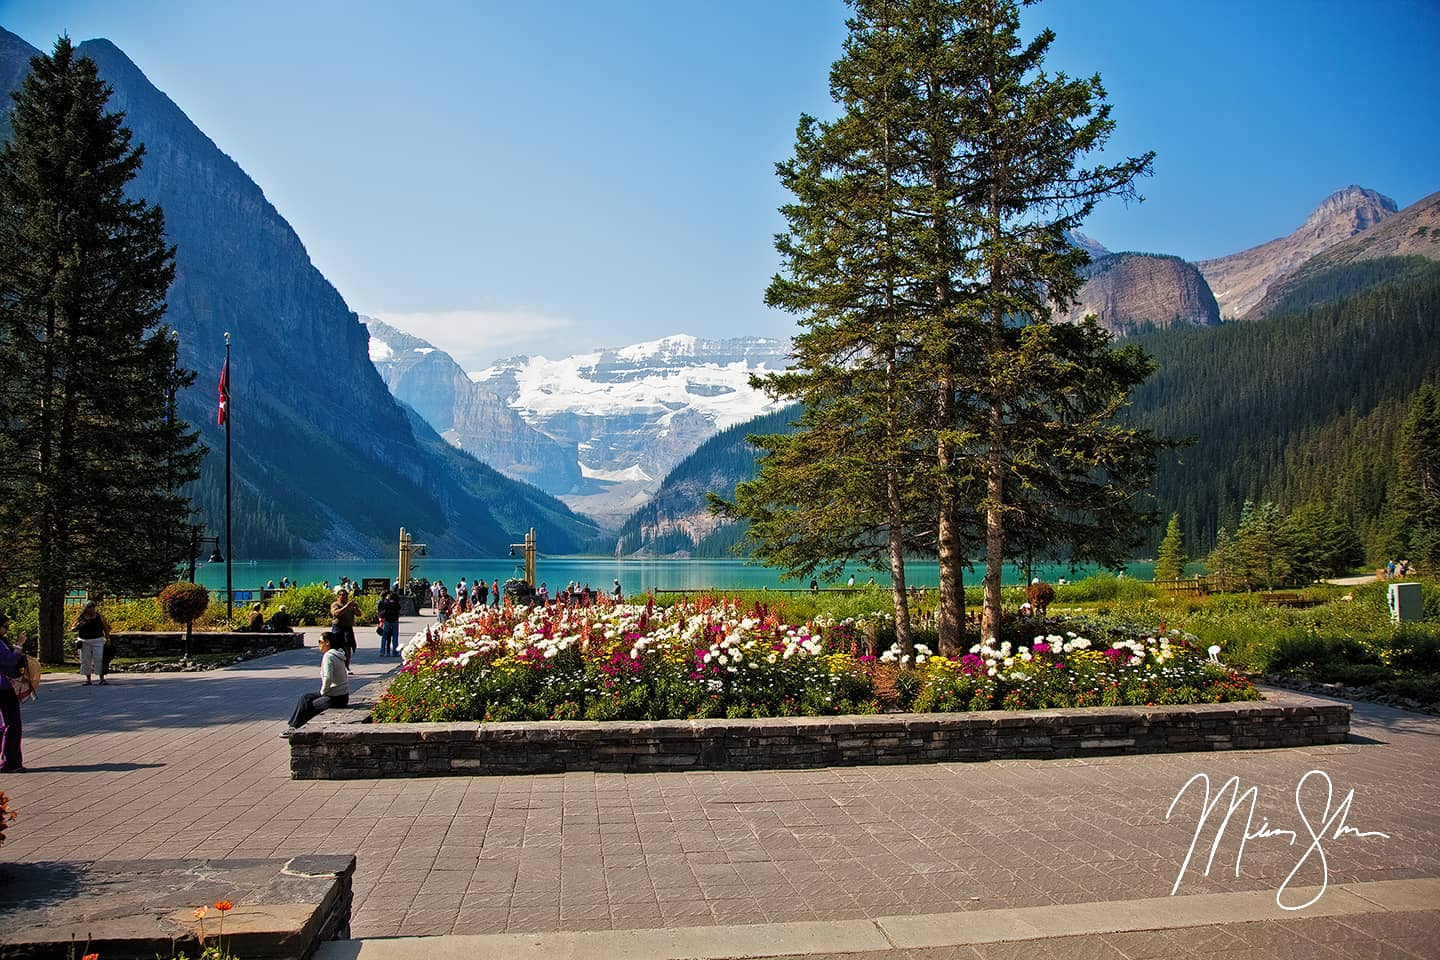 Open edition fine art print of Fairmont Gardens Lake Louise from Mickey Shannon Photography. Location: The Fairmont Chateau, Lake Louise, Banff National Park, Alberta, Canada